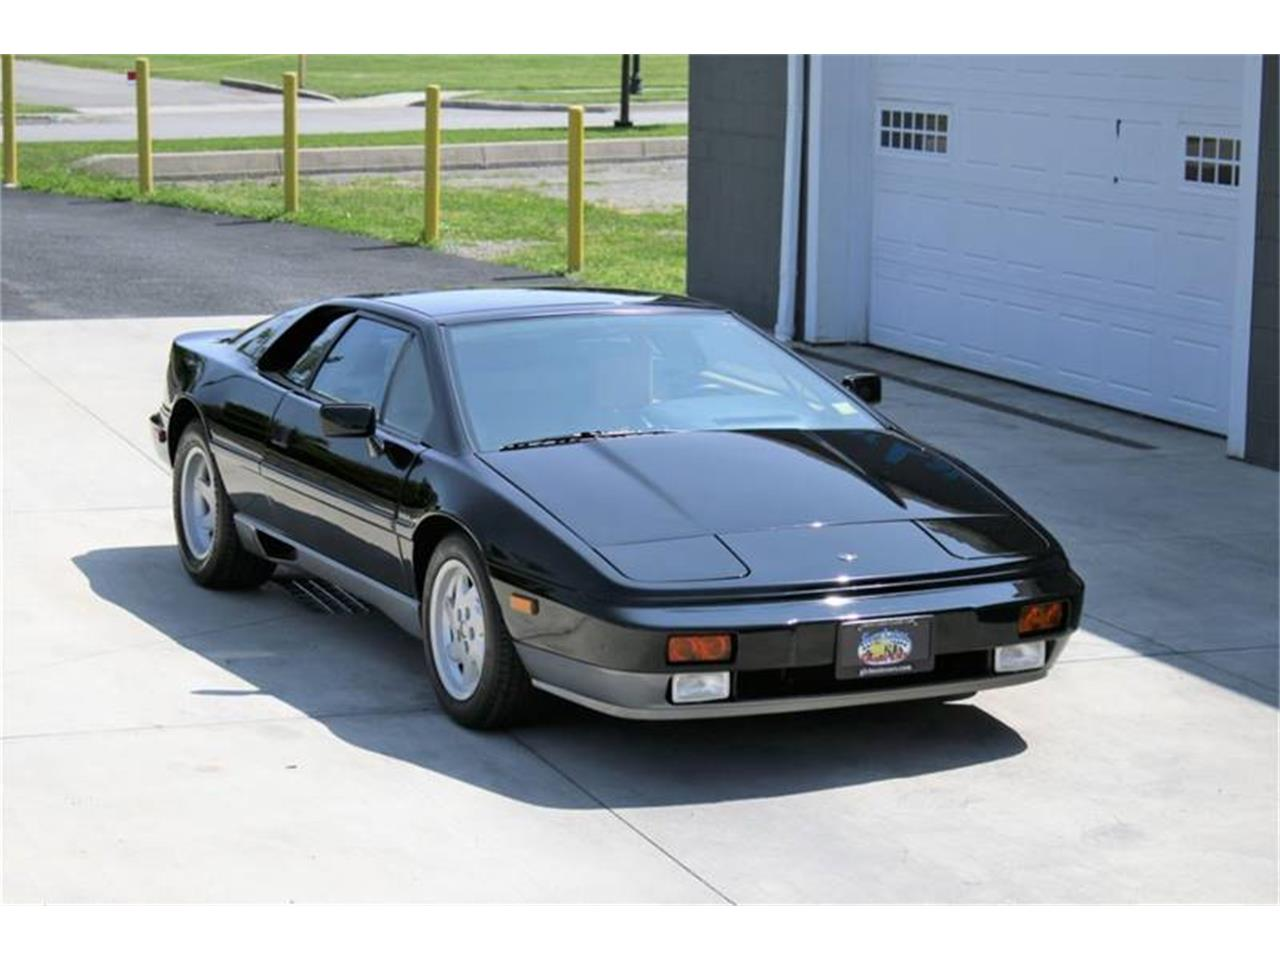 Large Picture of 1988 Lotus Esprit located in New York Offered by Great Lakes Classic Cars - QE3Z